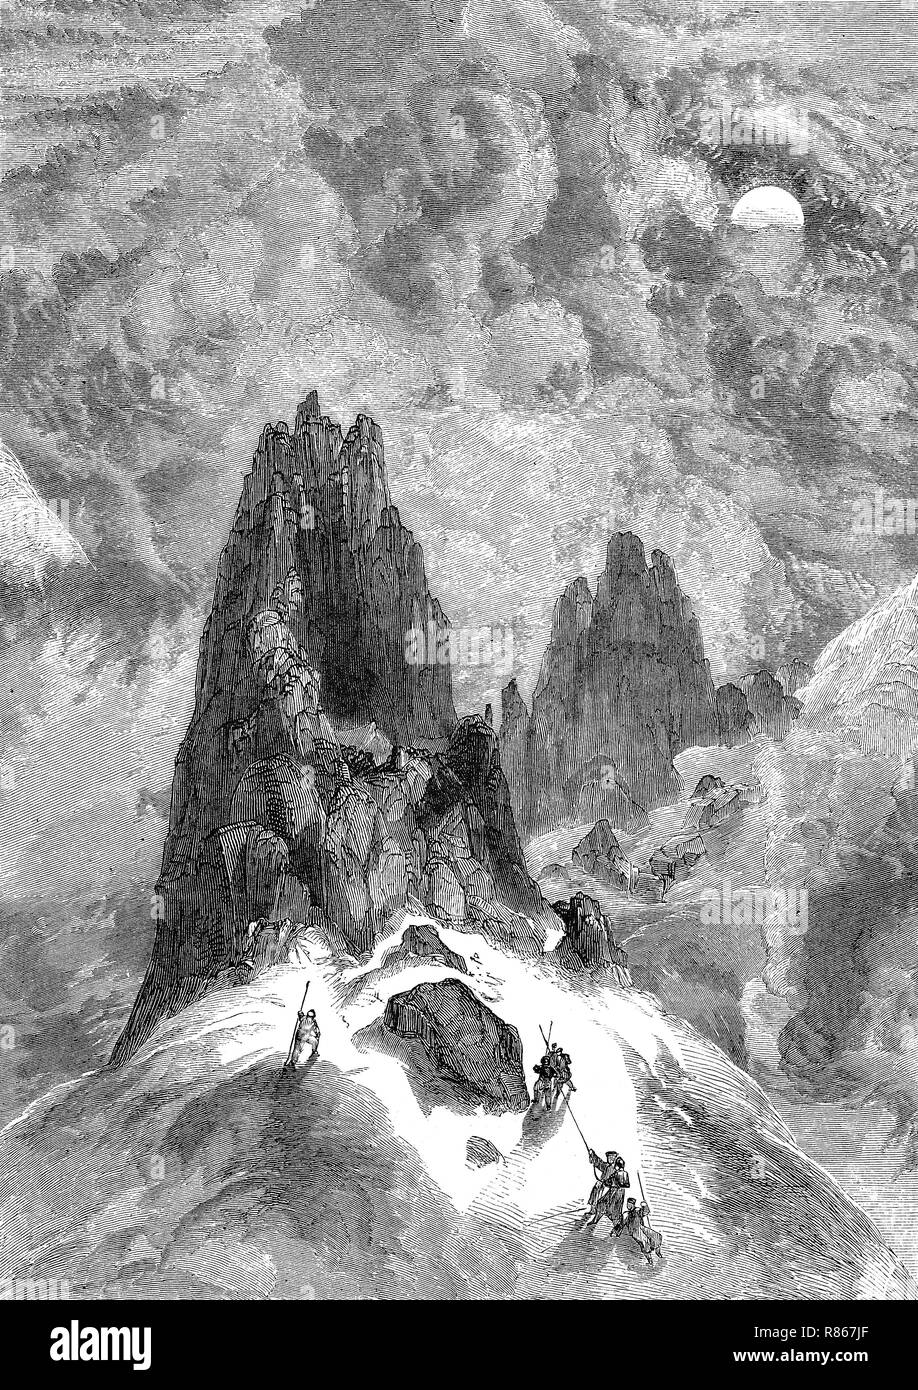 Digital improved reproduction, climbing on Montblanc mountain, France, Bergsteiger am Montblanc, Frankreich, from an original print from the year 1855 Stock Photo